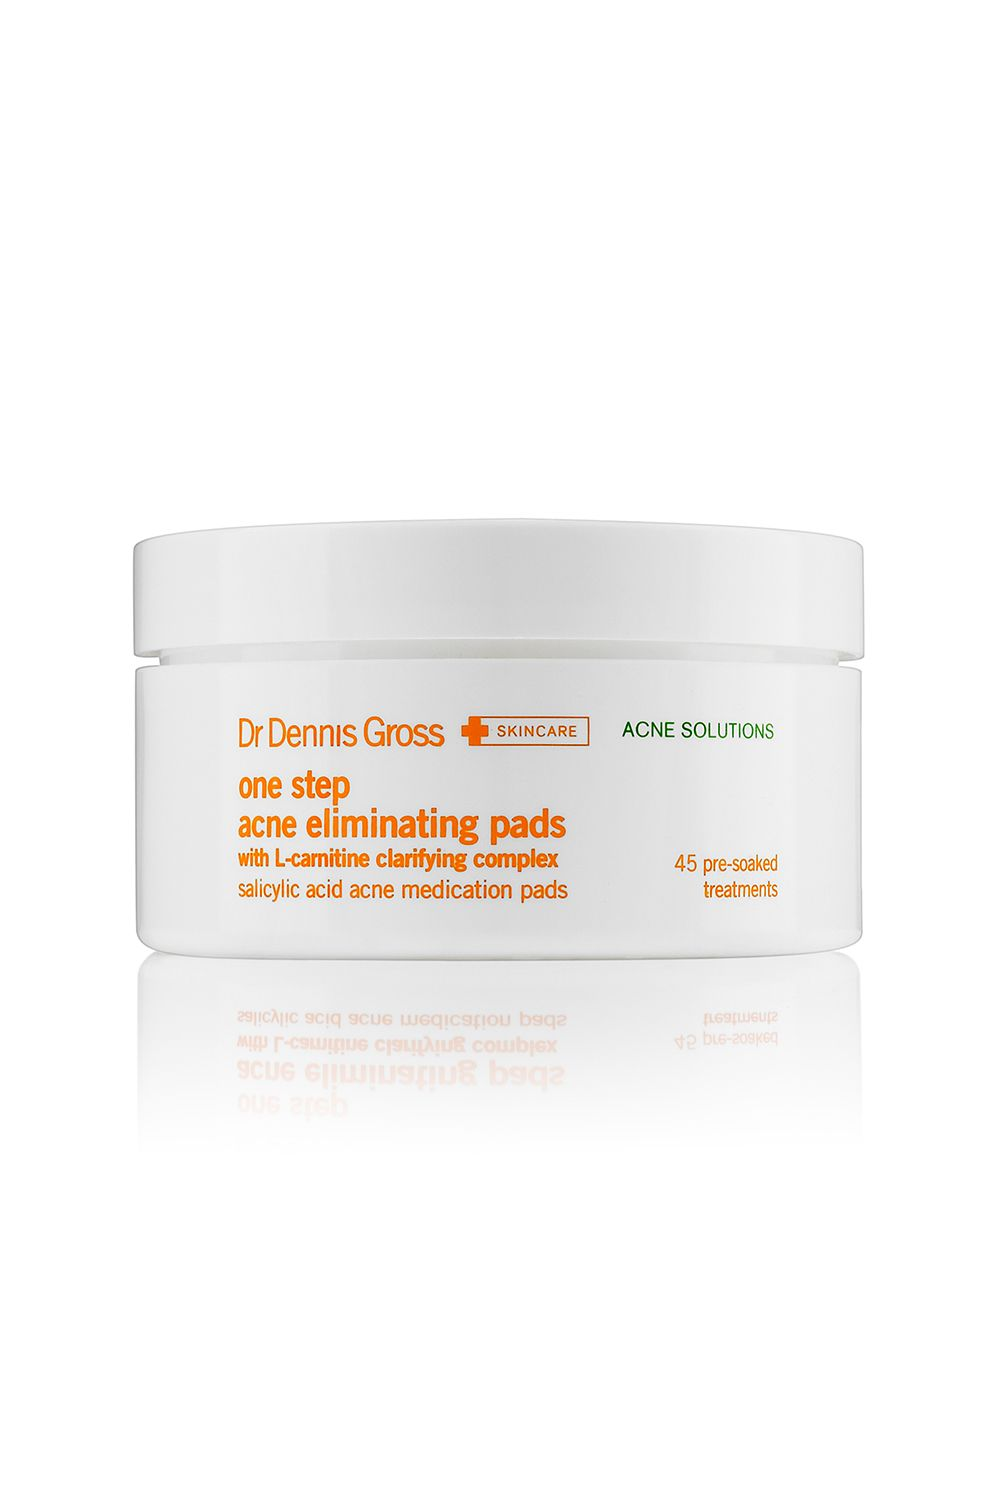 "<p>Filled with bacteria-killing azelaic acid (the unsung gentle hero of the acne world) and skin-balancing willow bark, these pads can be used every day without irritation.</p><p><i data-redactor-tag=""i"">Dr&nbsp&#x3B;Dennis Gross Skincare One Step Acne Pads, $38</i></p><p><strong data-redactor-tag=""strong"">BUY IT:&nbsp&#x3B;<a href=""http://www.sephora.com/one-step-acne-eliminating-pads-P381405?skuId=1497858&amp&#x3B;icid2=products%20grid:p381405"">sephora.com</a>.&nbsp&#x3B;</strong></p>"